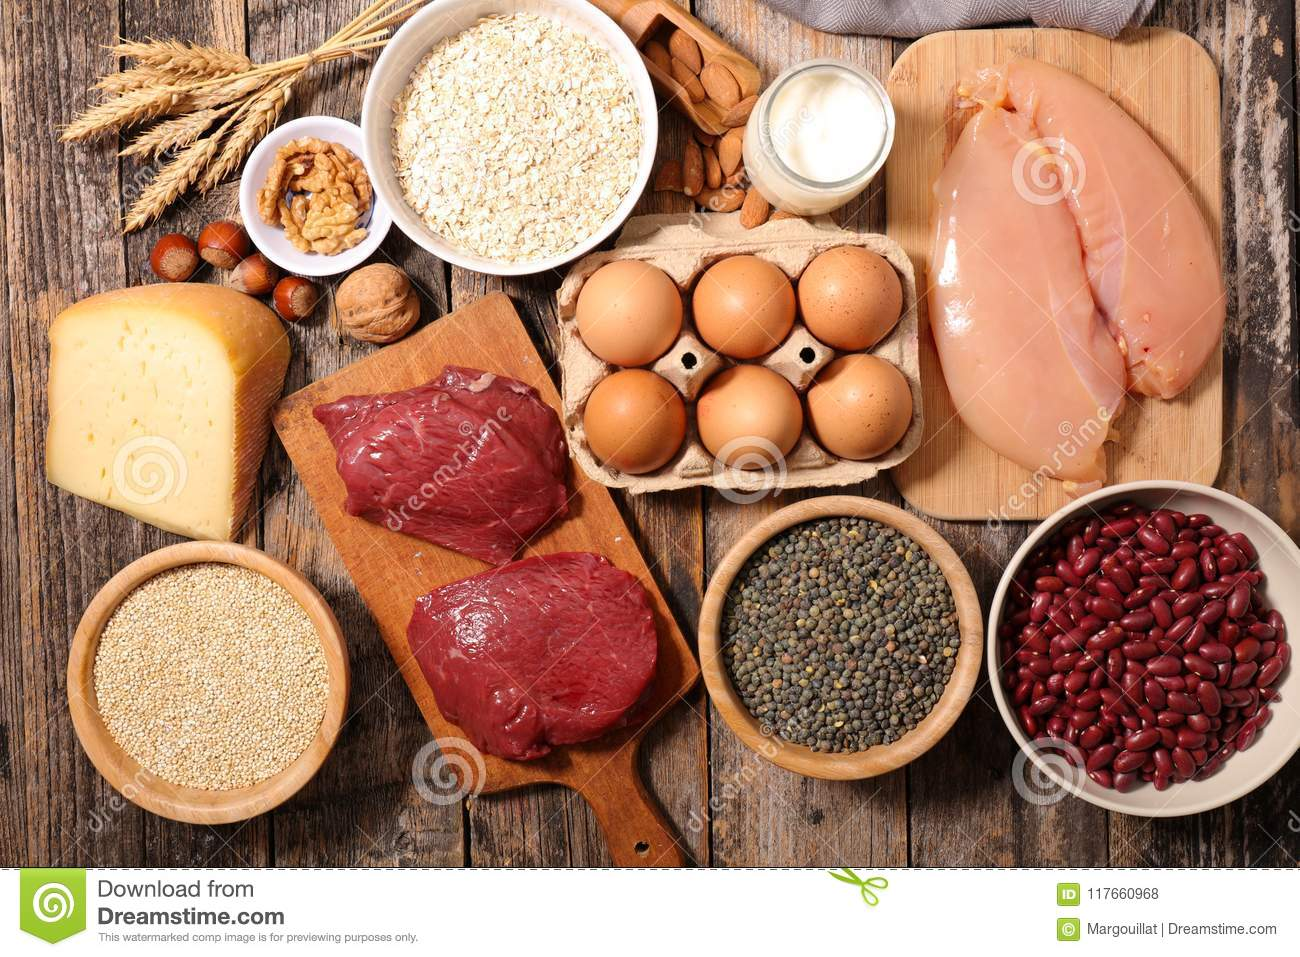 Ingredient high in protein